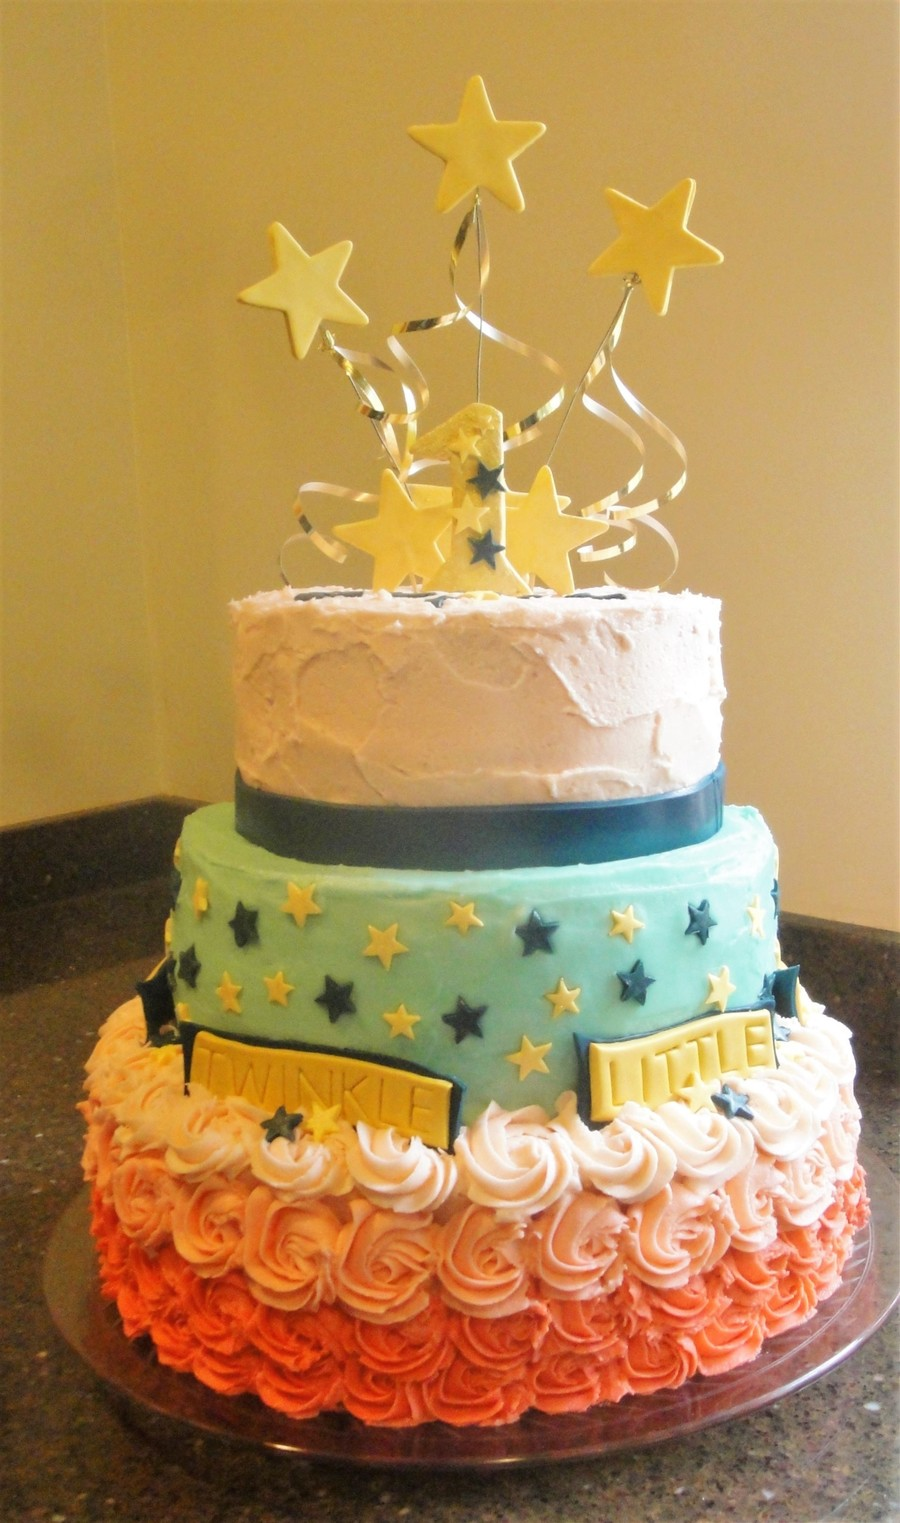 Twinkle Twinkle Little Star Birthday Cake CakeCentralcom